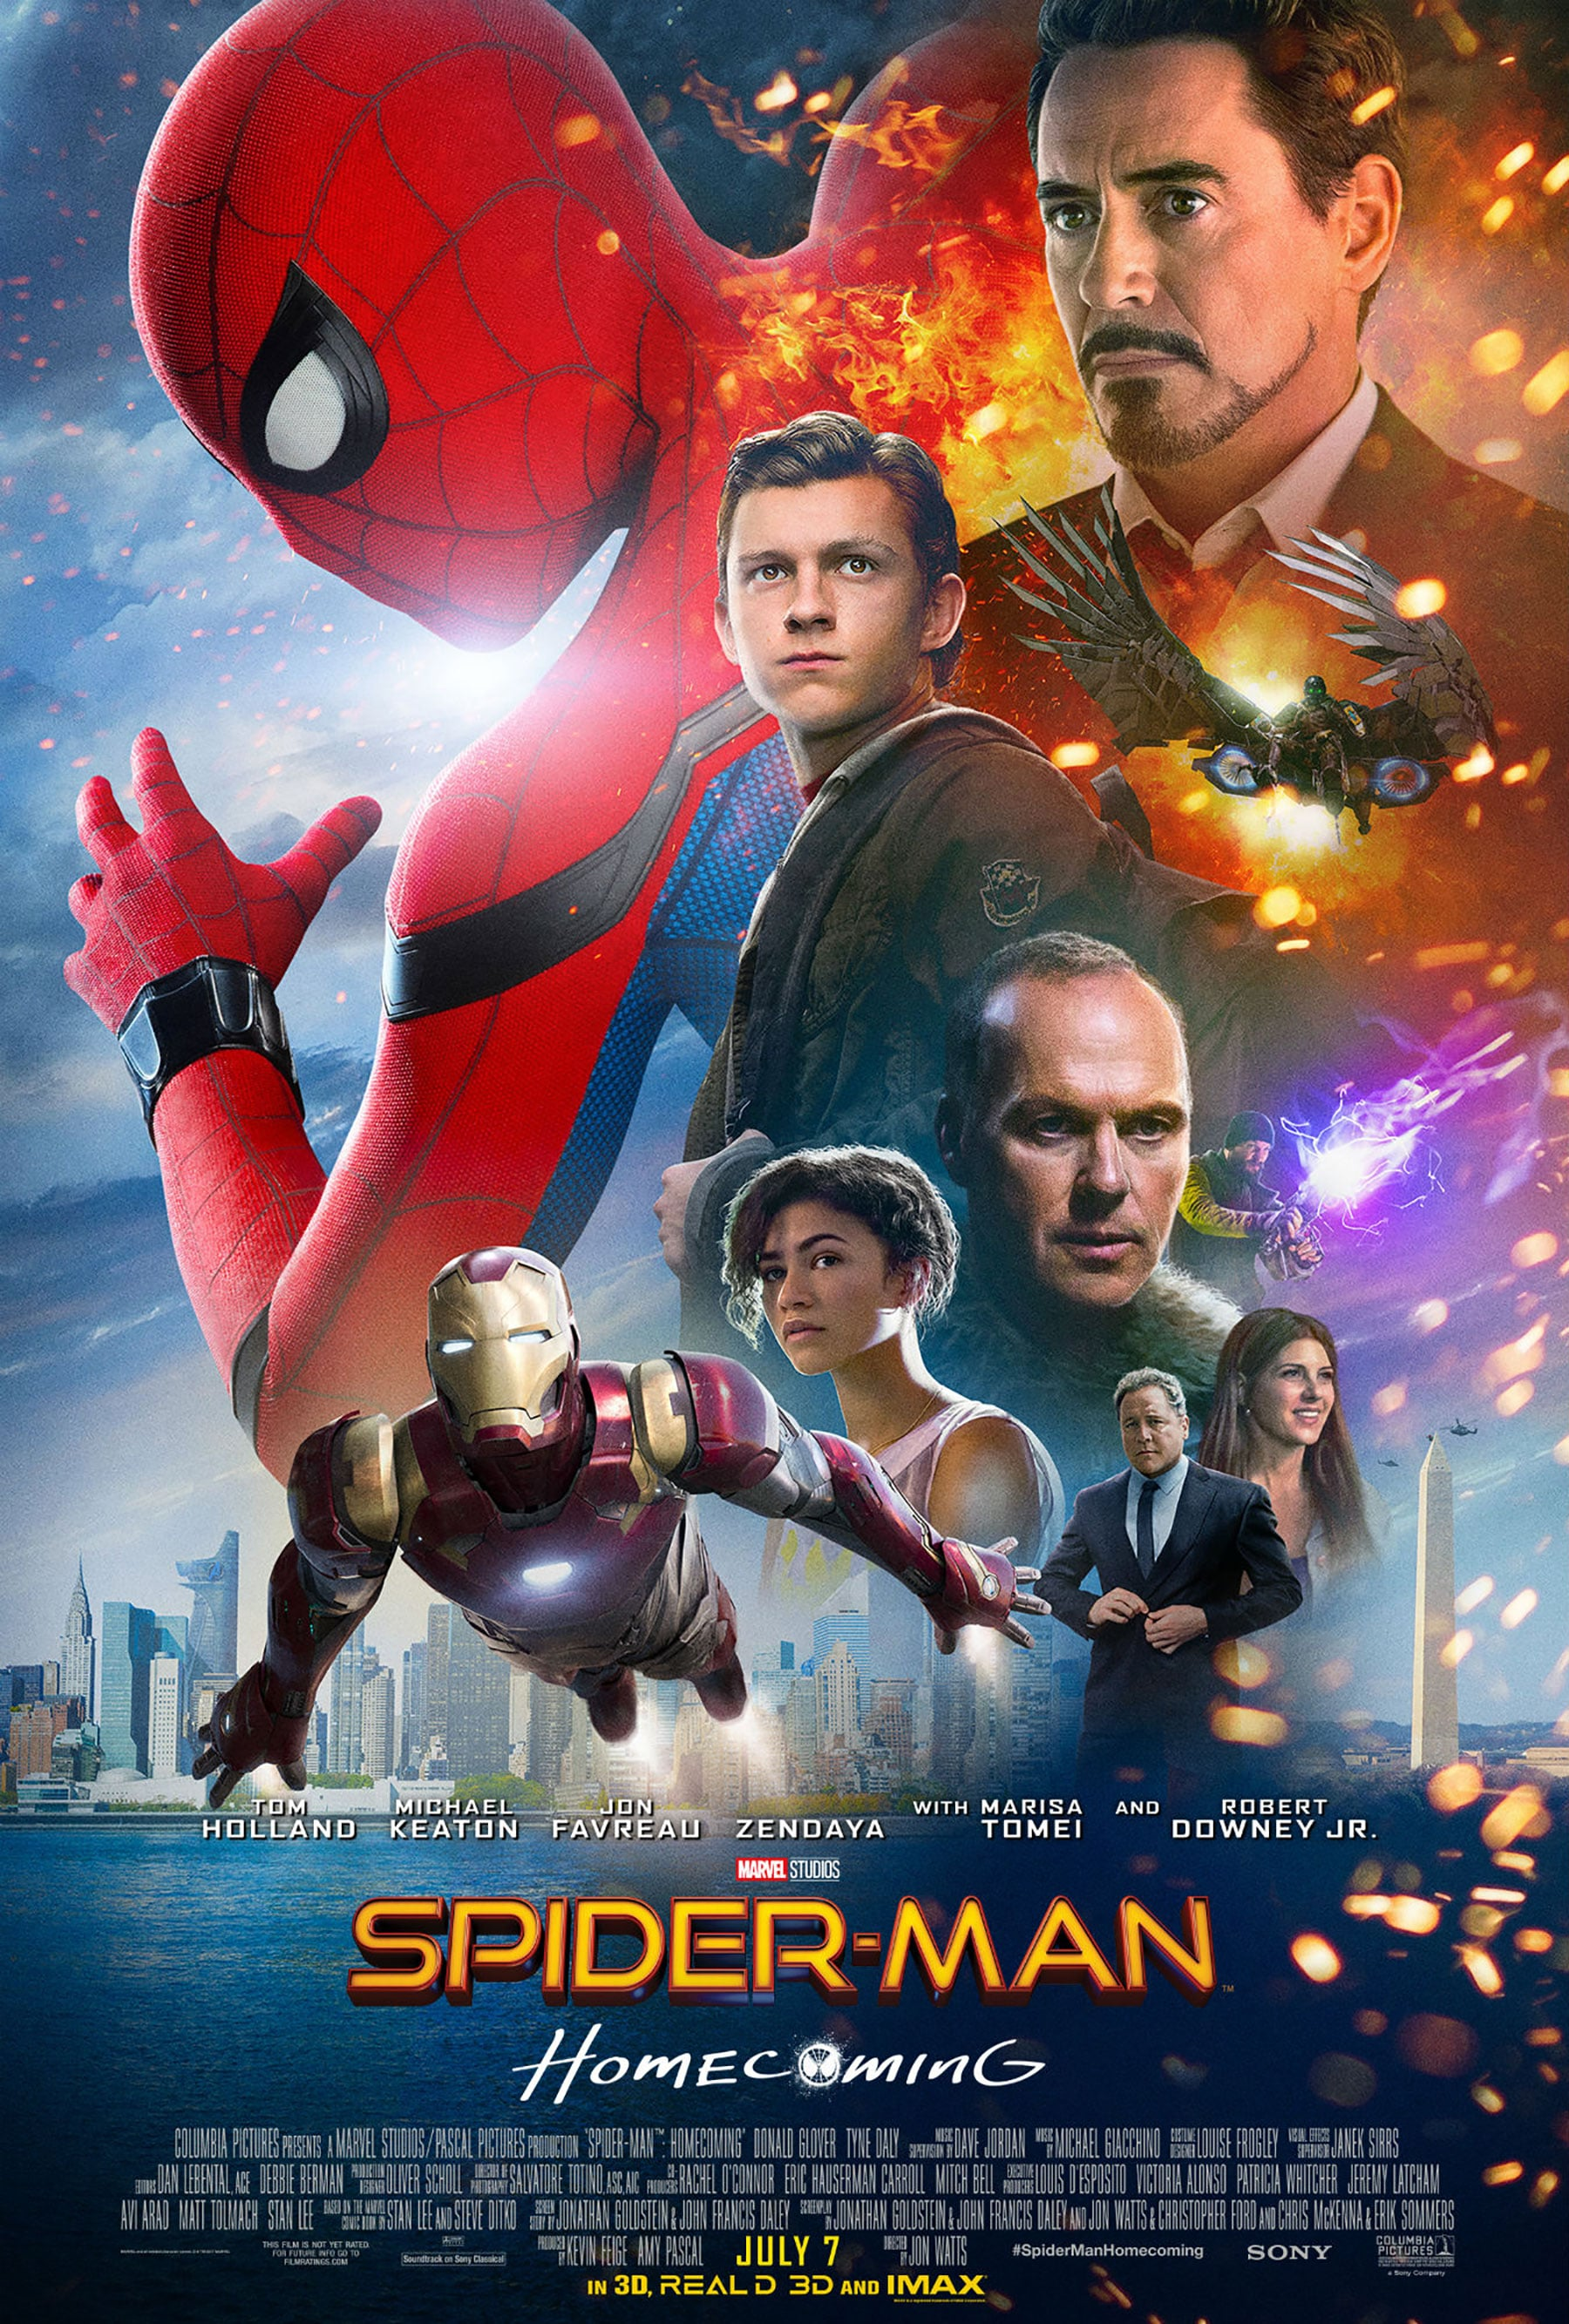 spiderman homecoming poster high quality HD printable wallpapers all characters official poster iron man tony stark